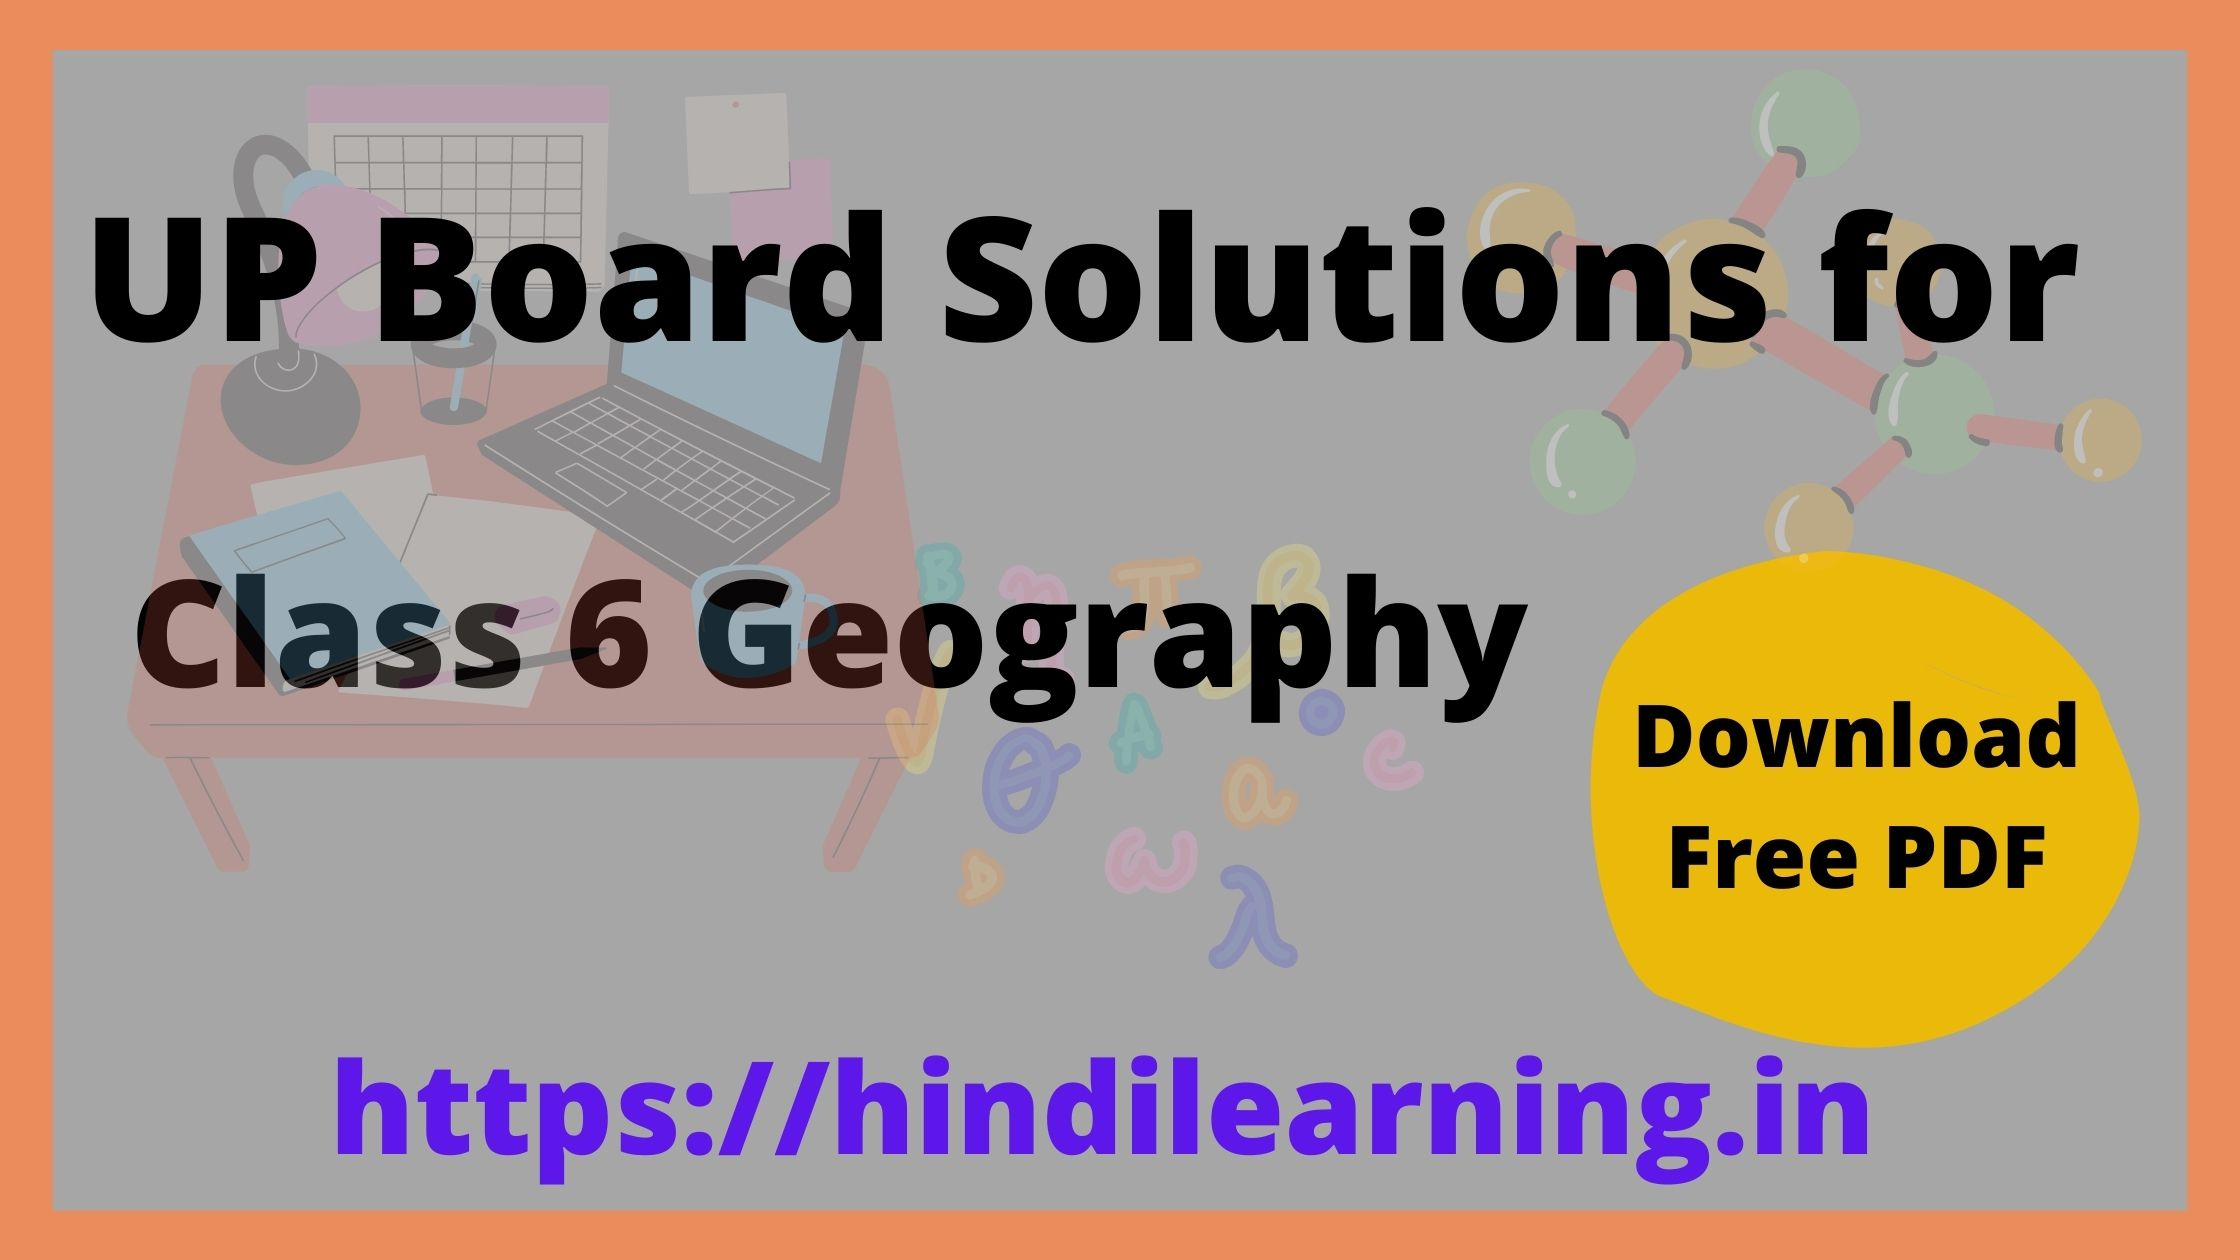 UP Board Solutions for Class 6 Geography ( भूगोल )